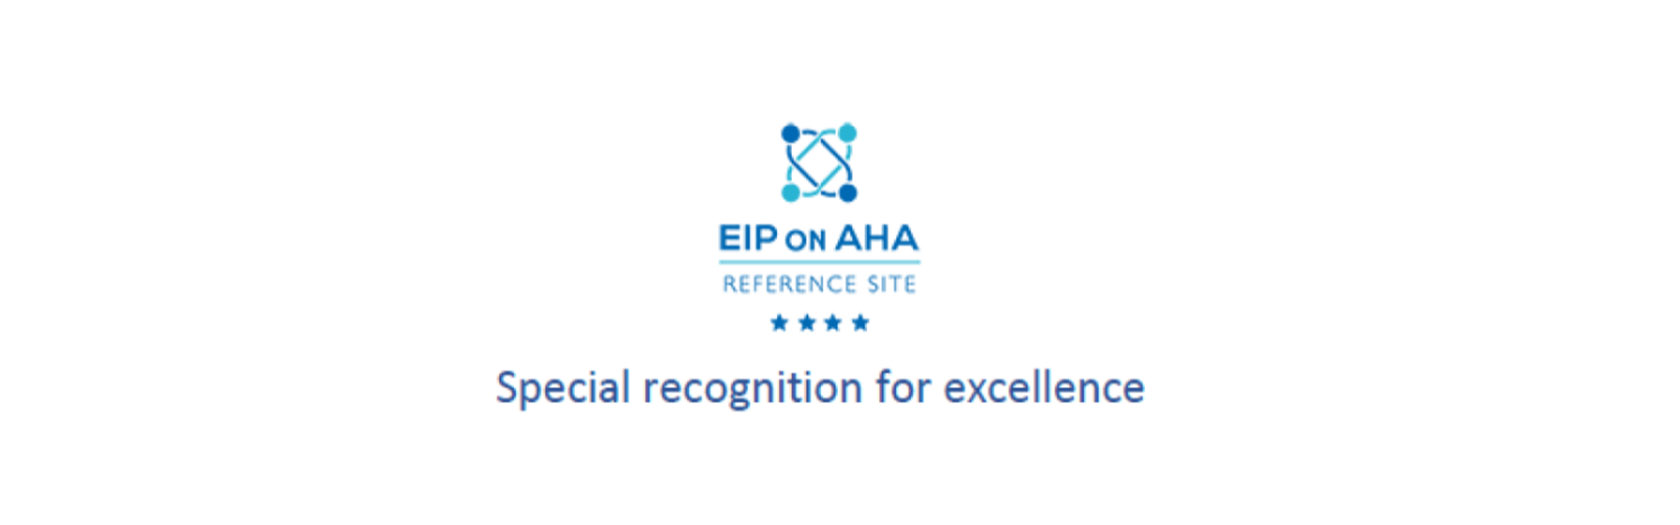 Basque Reference Site 4 Stars - Special Recognition for Excellence